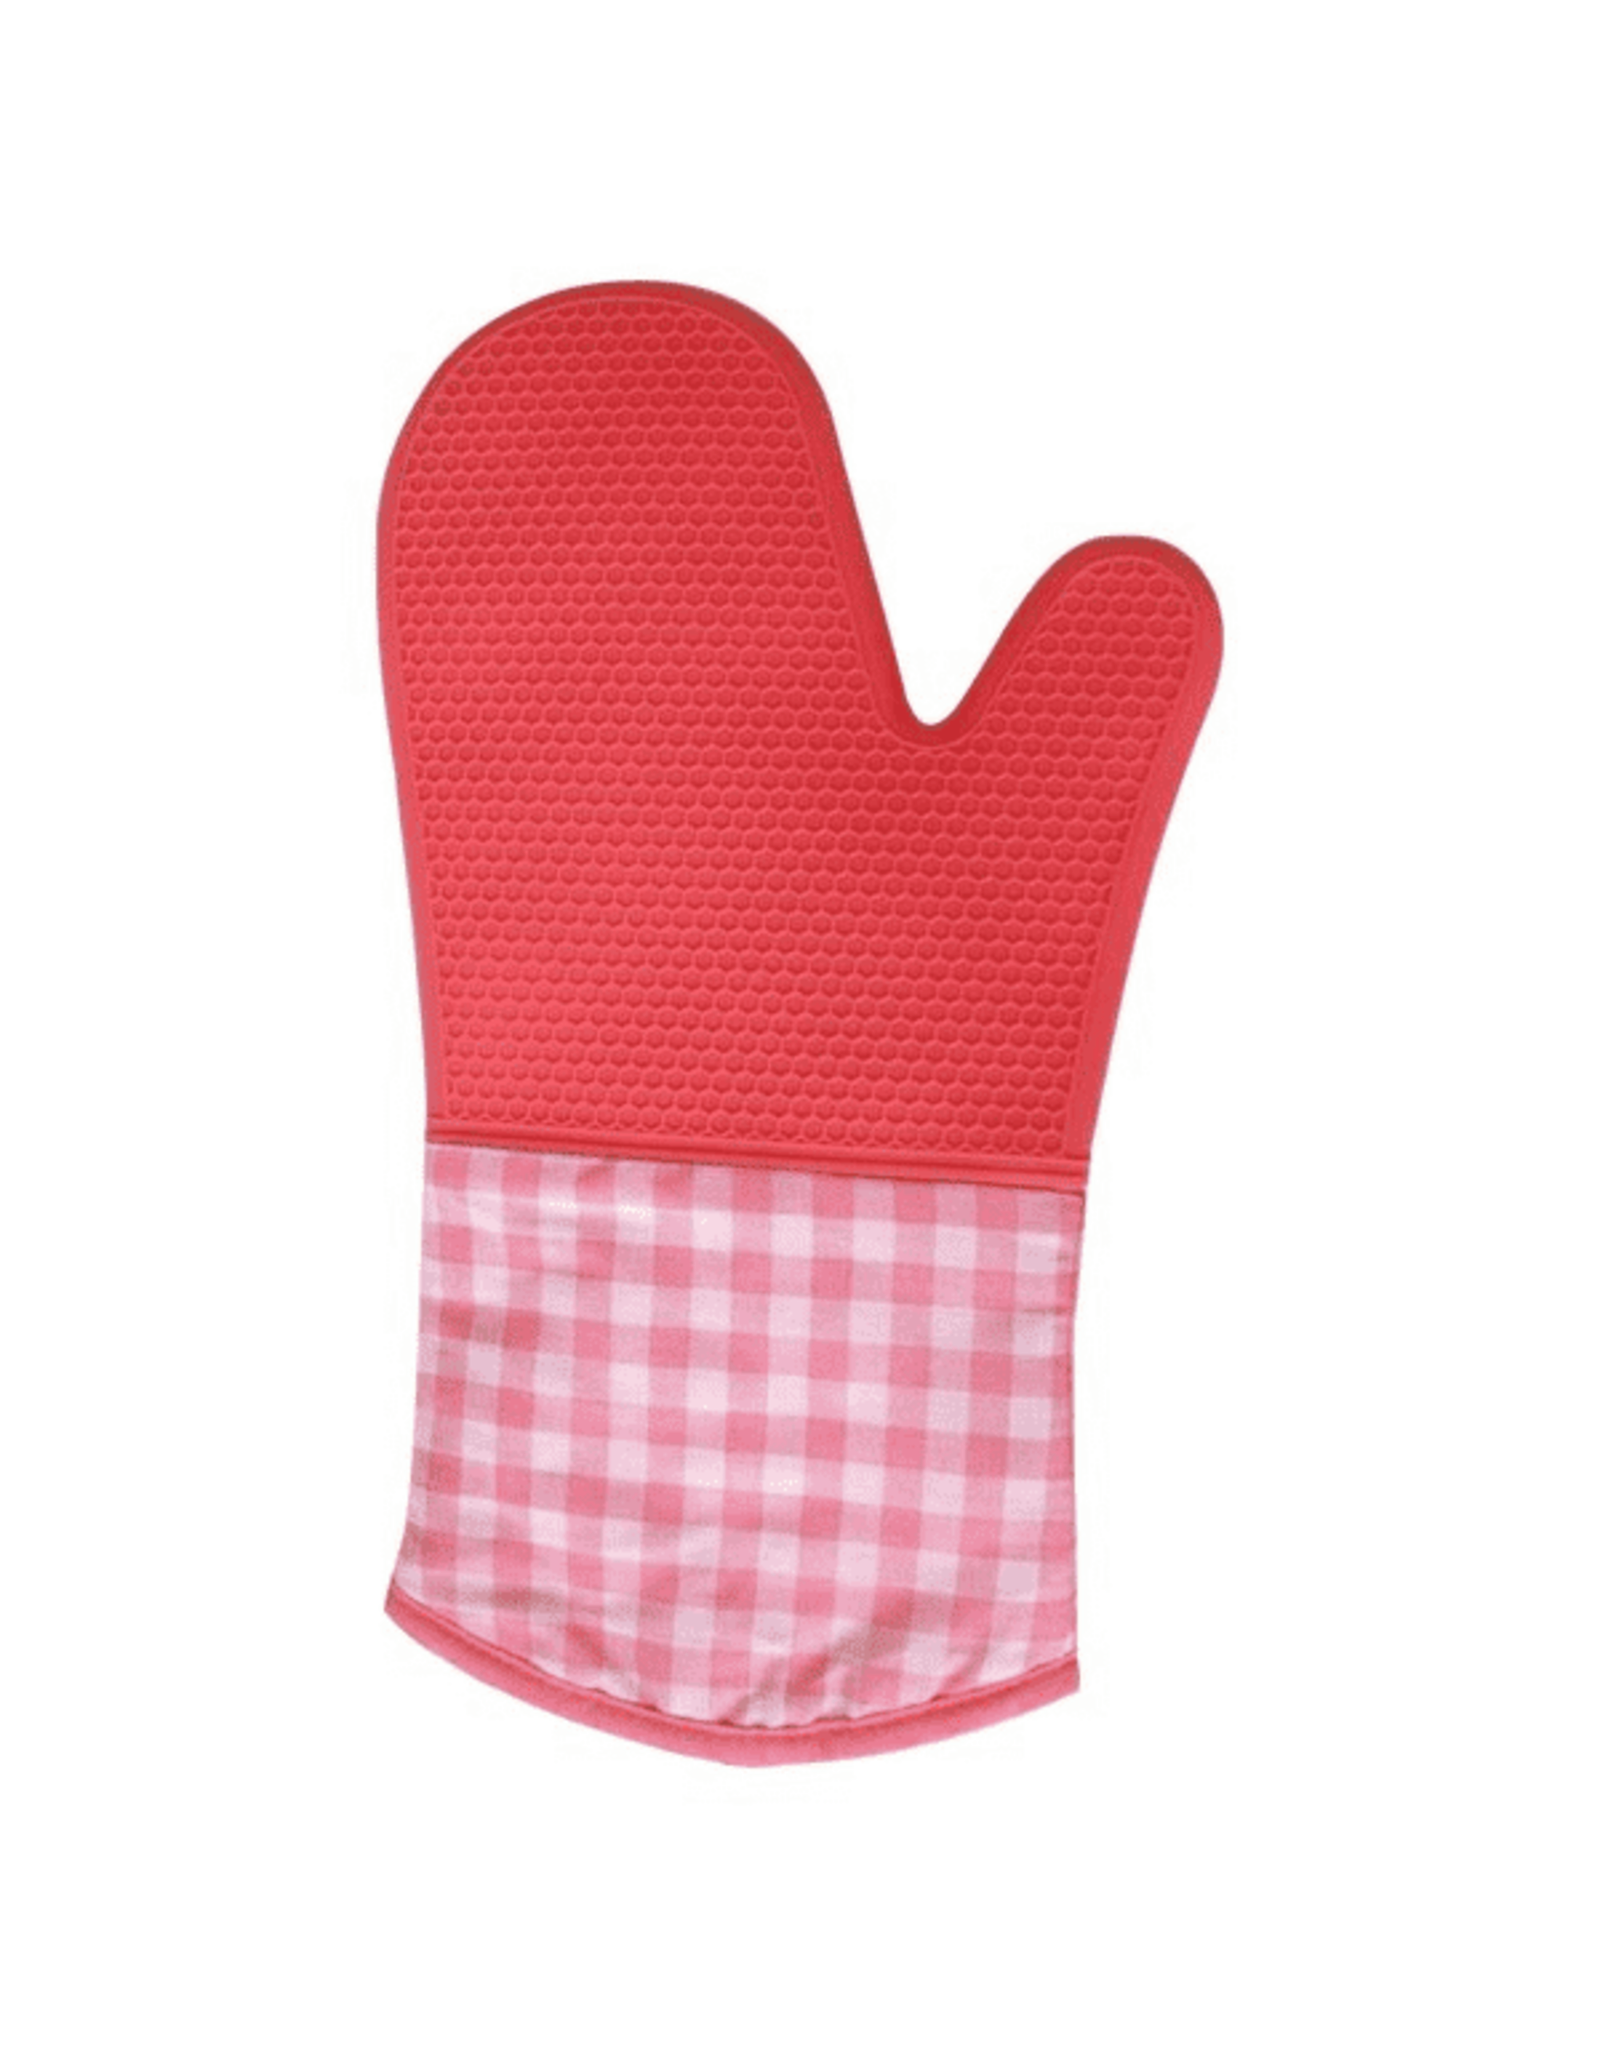 Cool Touch - Silicone Oven Mitt - Checkered, 12.5 in, Pink, CP,12